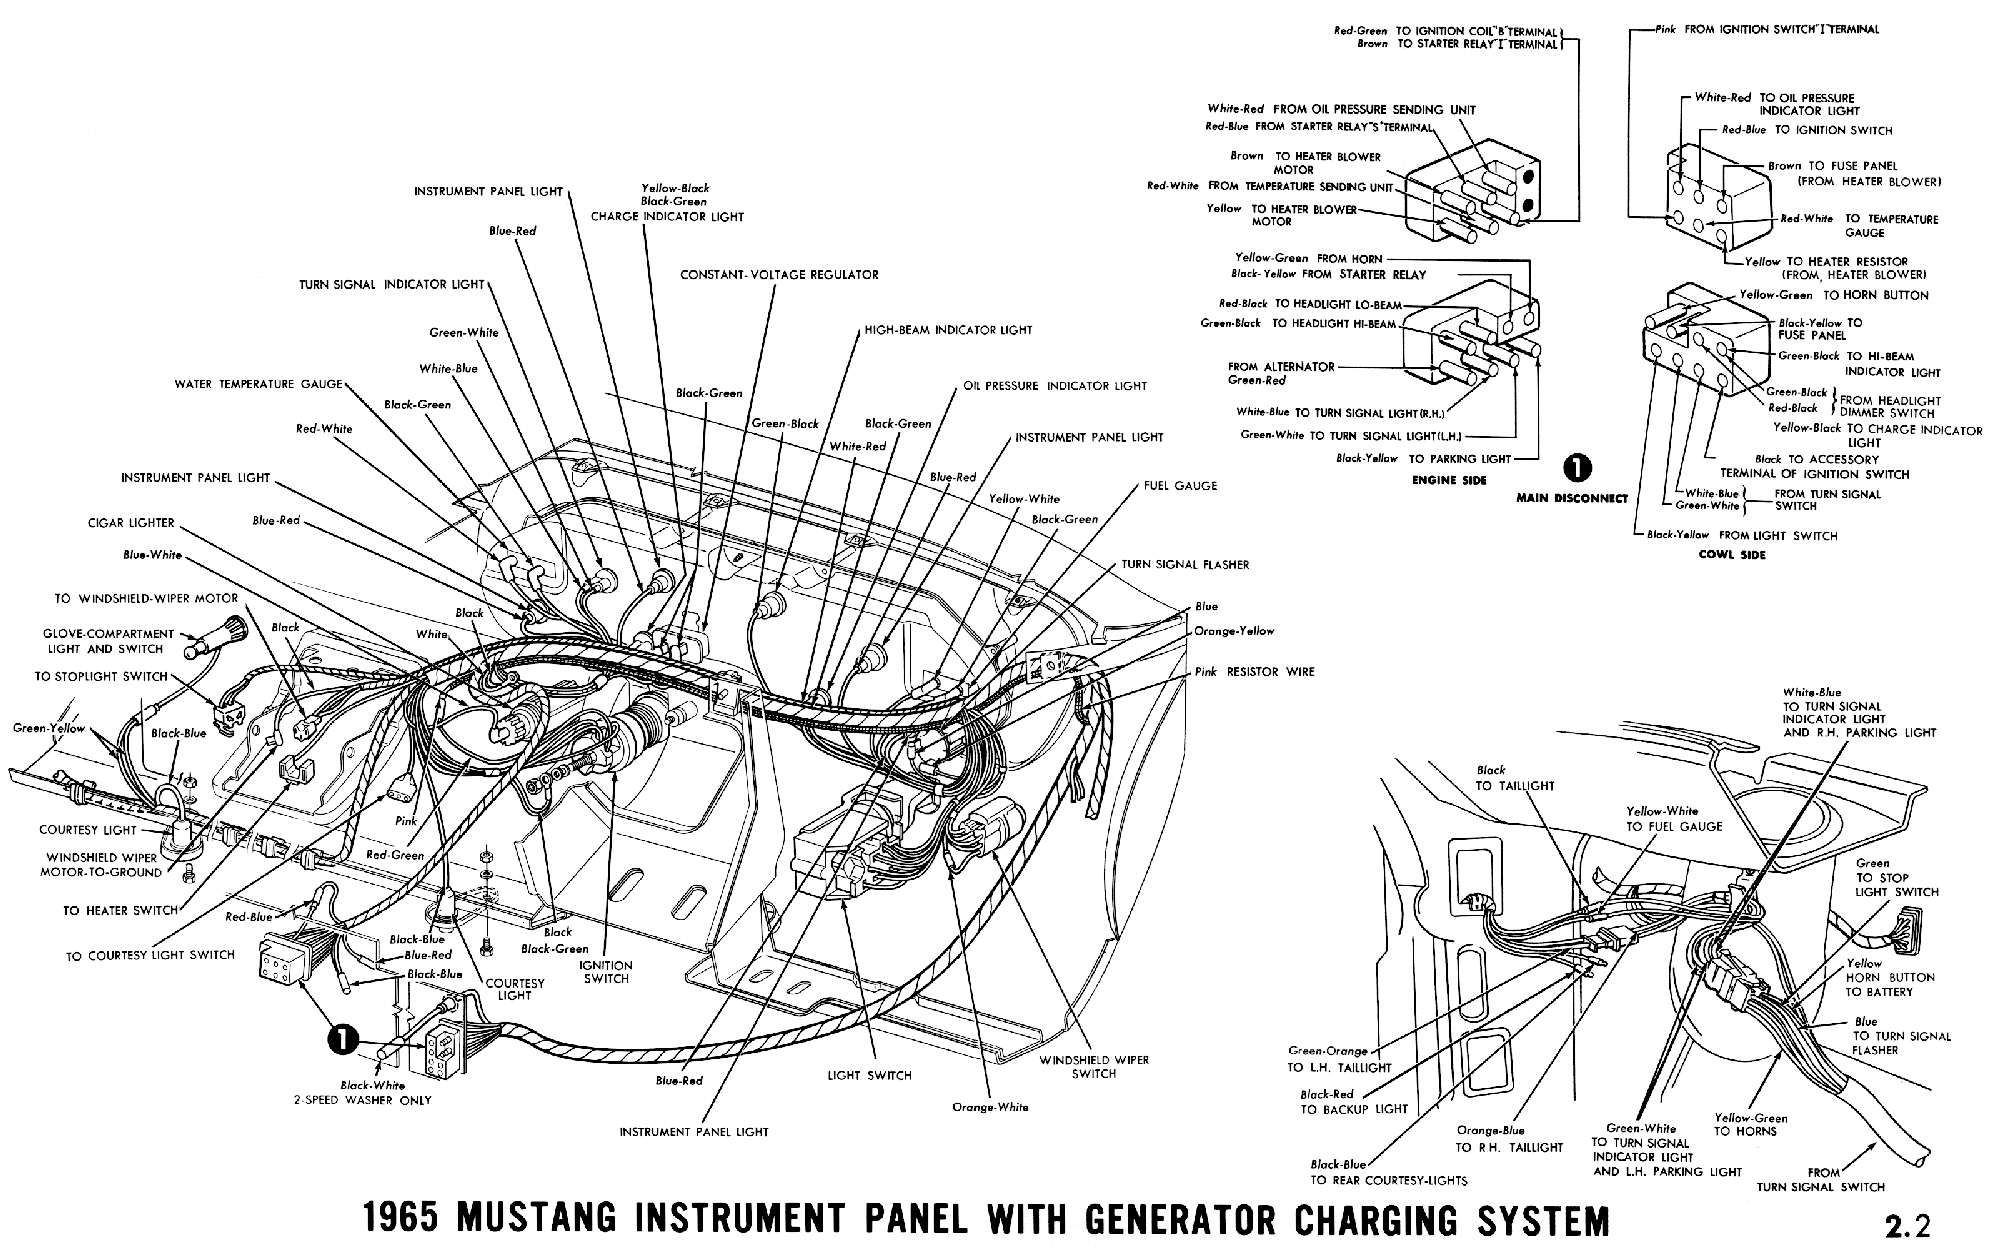 hight resolution of 1965 mustang instrument panel with alternator charging system pictorial instrument cluster connections wiper switch headlamp switch ignition switch and